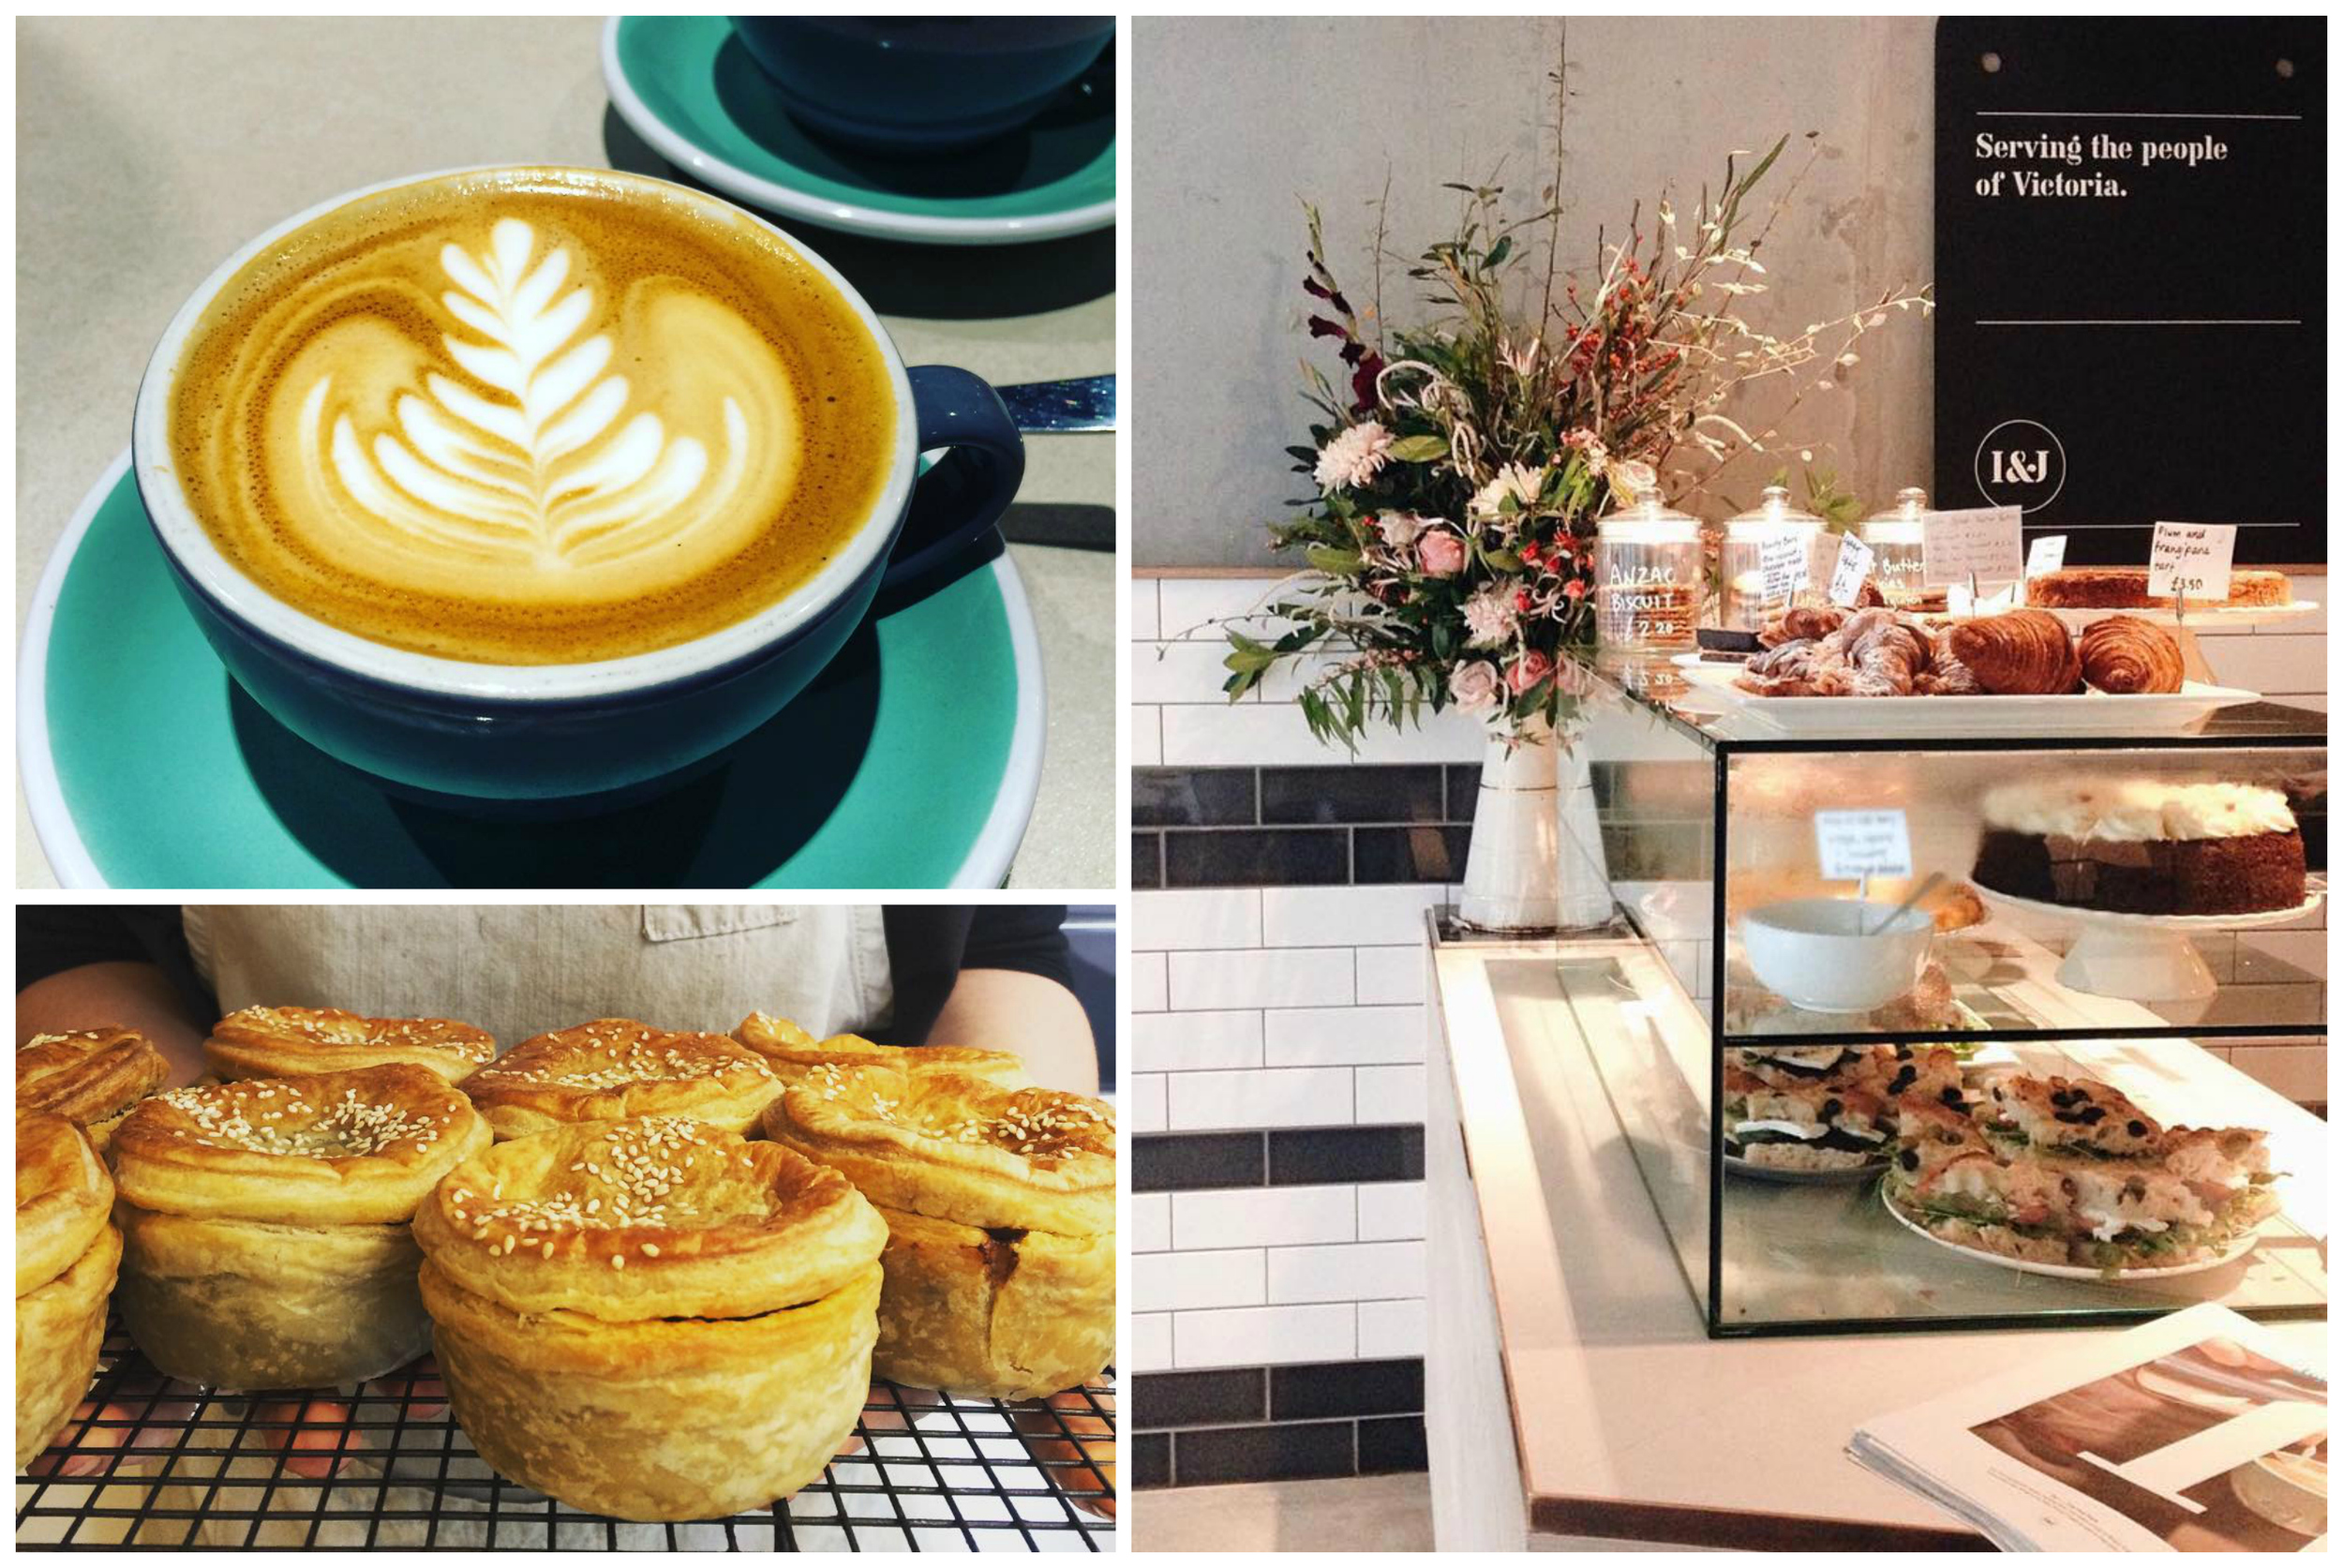 Breakfast, lunch or afternoon tea, anytime is a good time for an Iris & June coffee. (Images:  Iris & June Instagram )